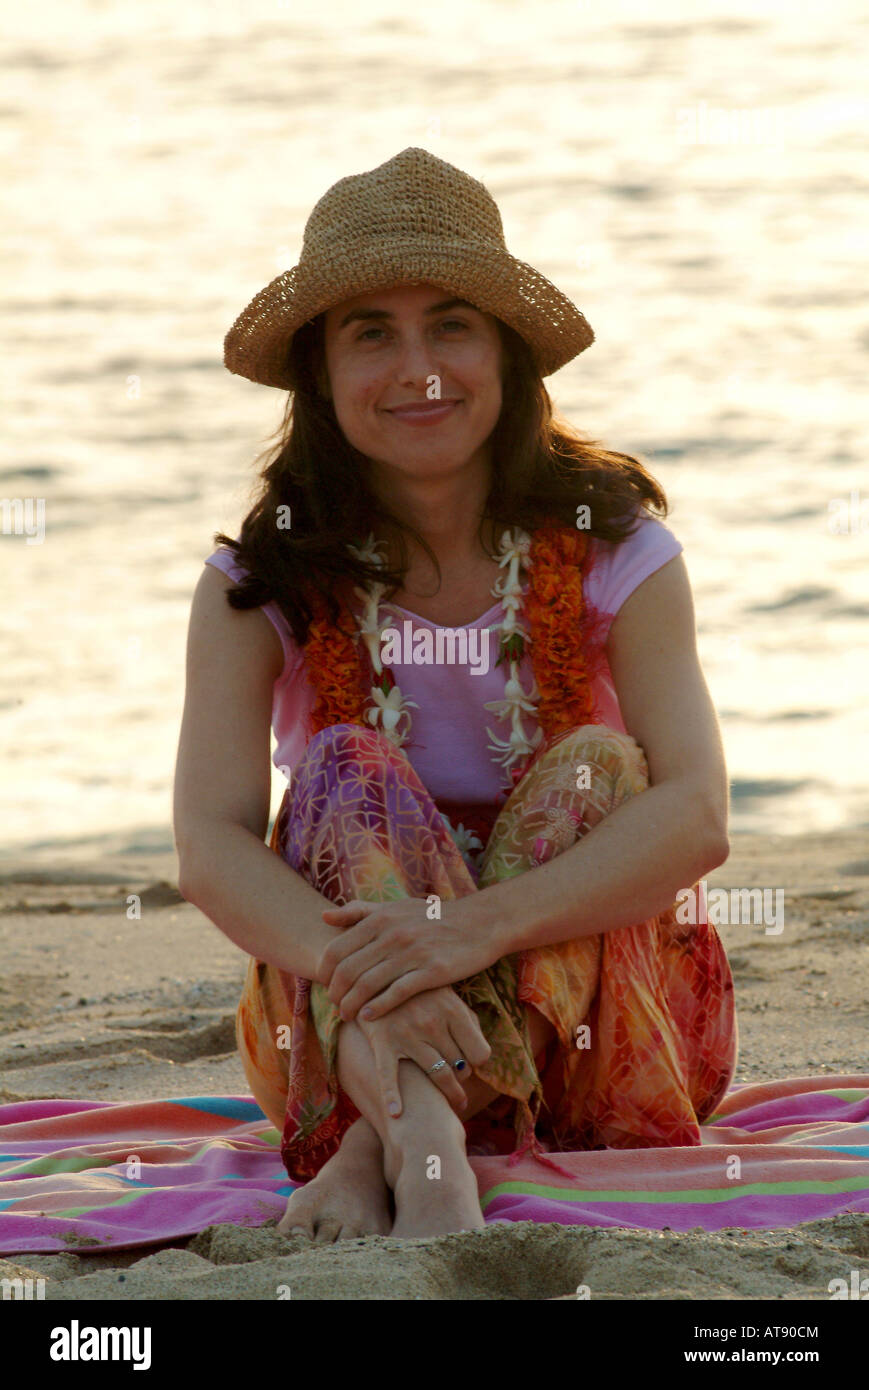 Jewish woman in mid thirty's sitting on towel at the beach wearing a hat and a flower leis Stock Photo